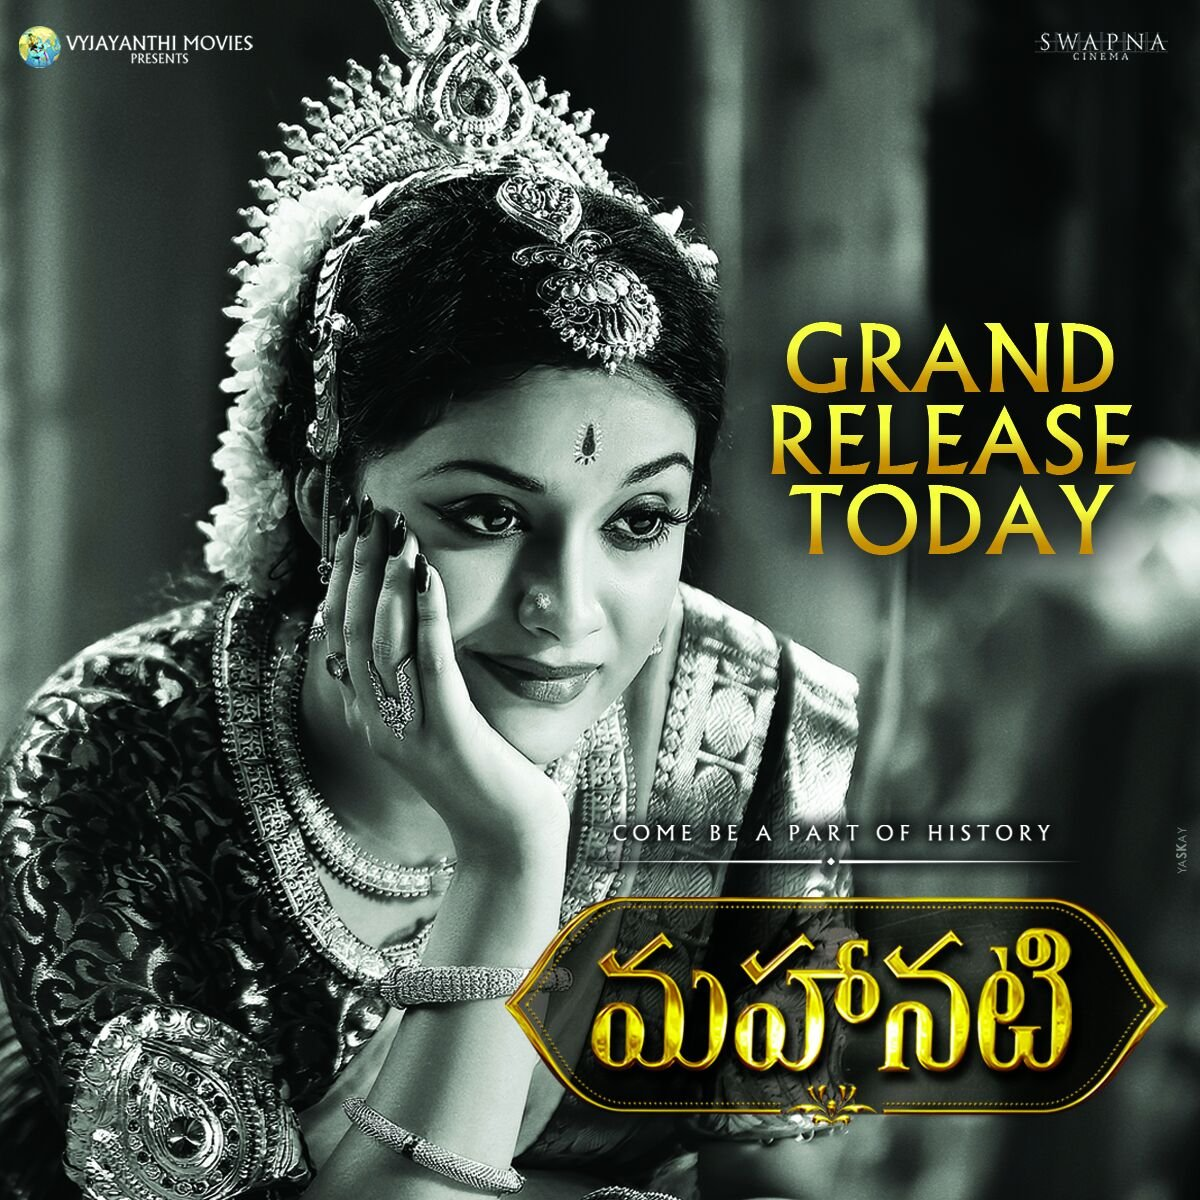 #Mahanati (U 177) From Today in Telugu States and Overseas!  https://t.co/3gAX7efRSD  #NadigaiyarThilagamFromMay11 https://t.co/IPQtly3RIH